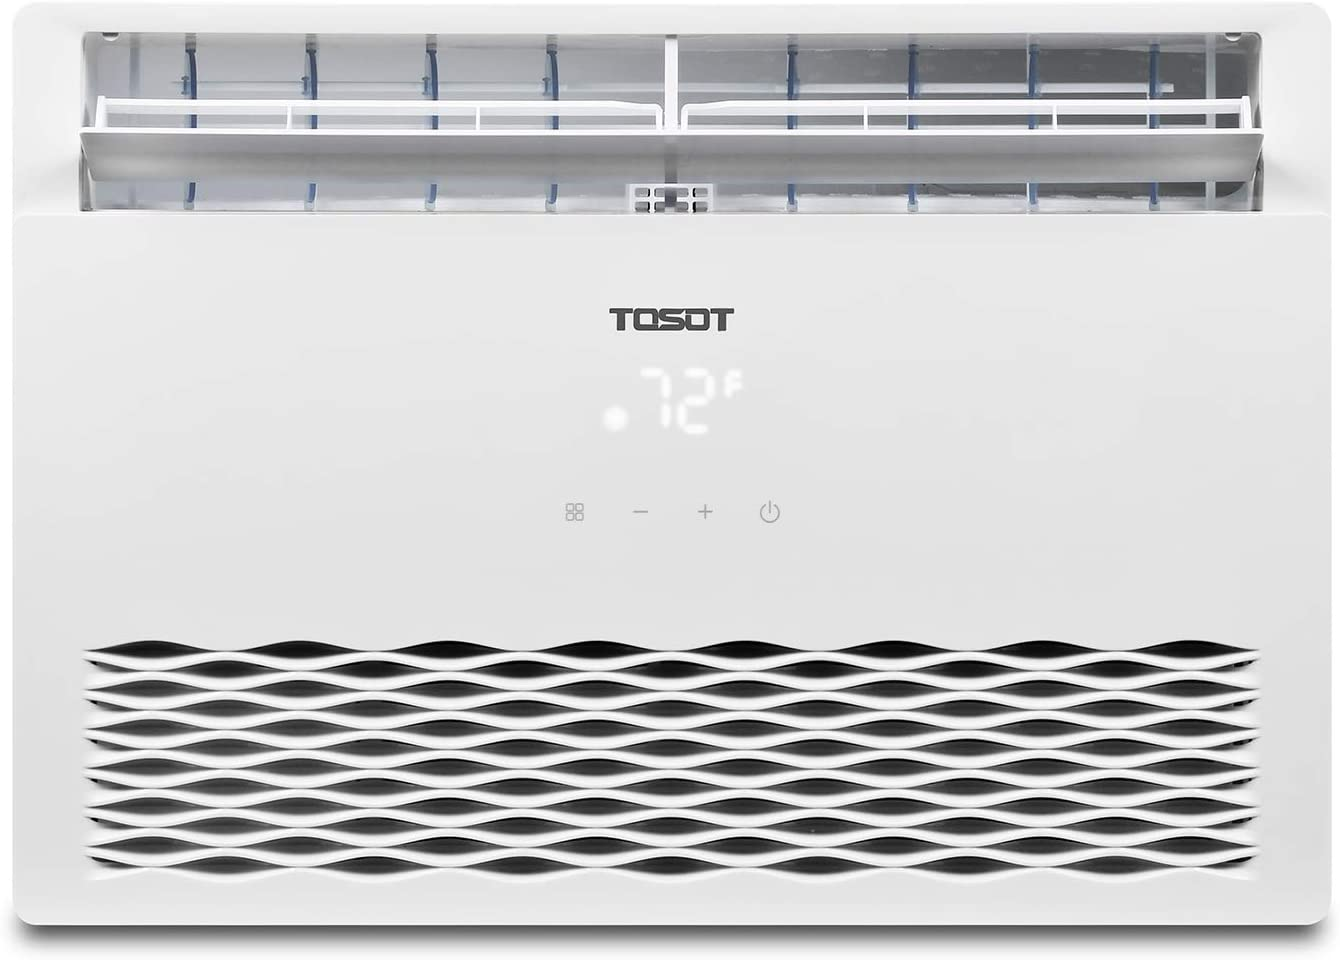 TOSOT 10,000 BTU Window Air Conditioner - 2019 Model, Energy Star, Modern Design, and Temperature-Sensing Remote - Window AC for Bedroom, Living Room, and attics up to 450 sq. ft.